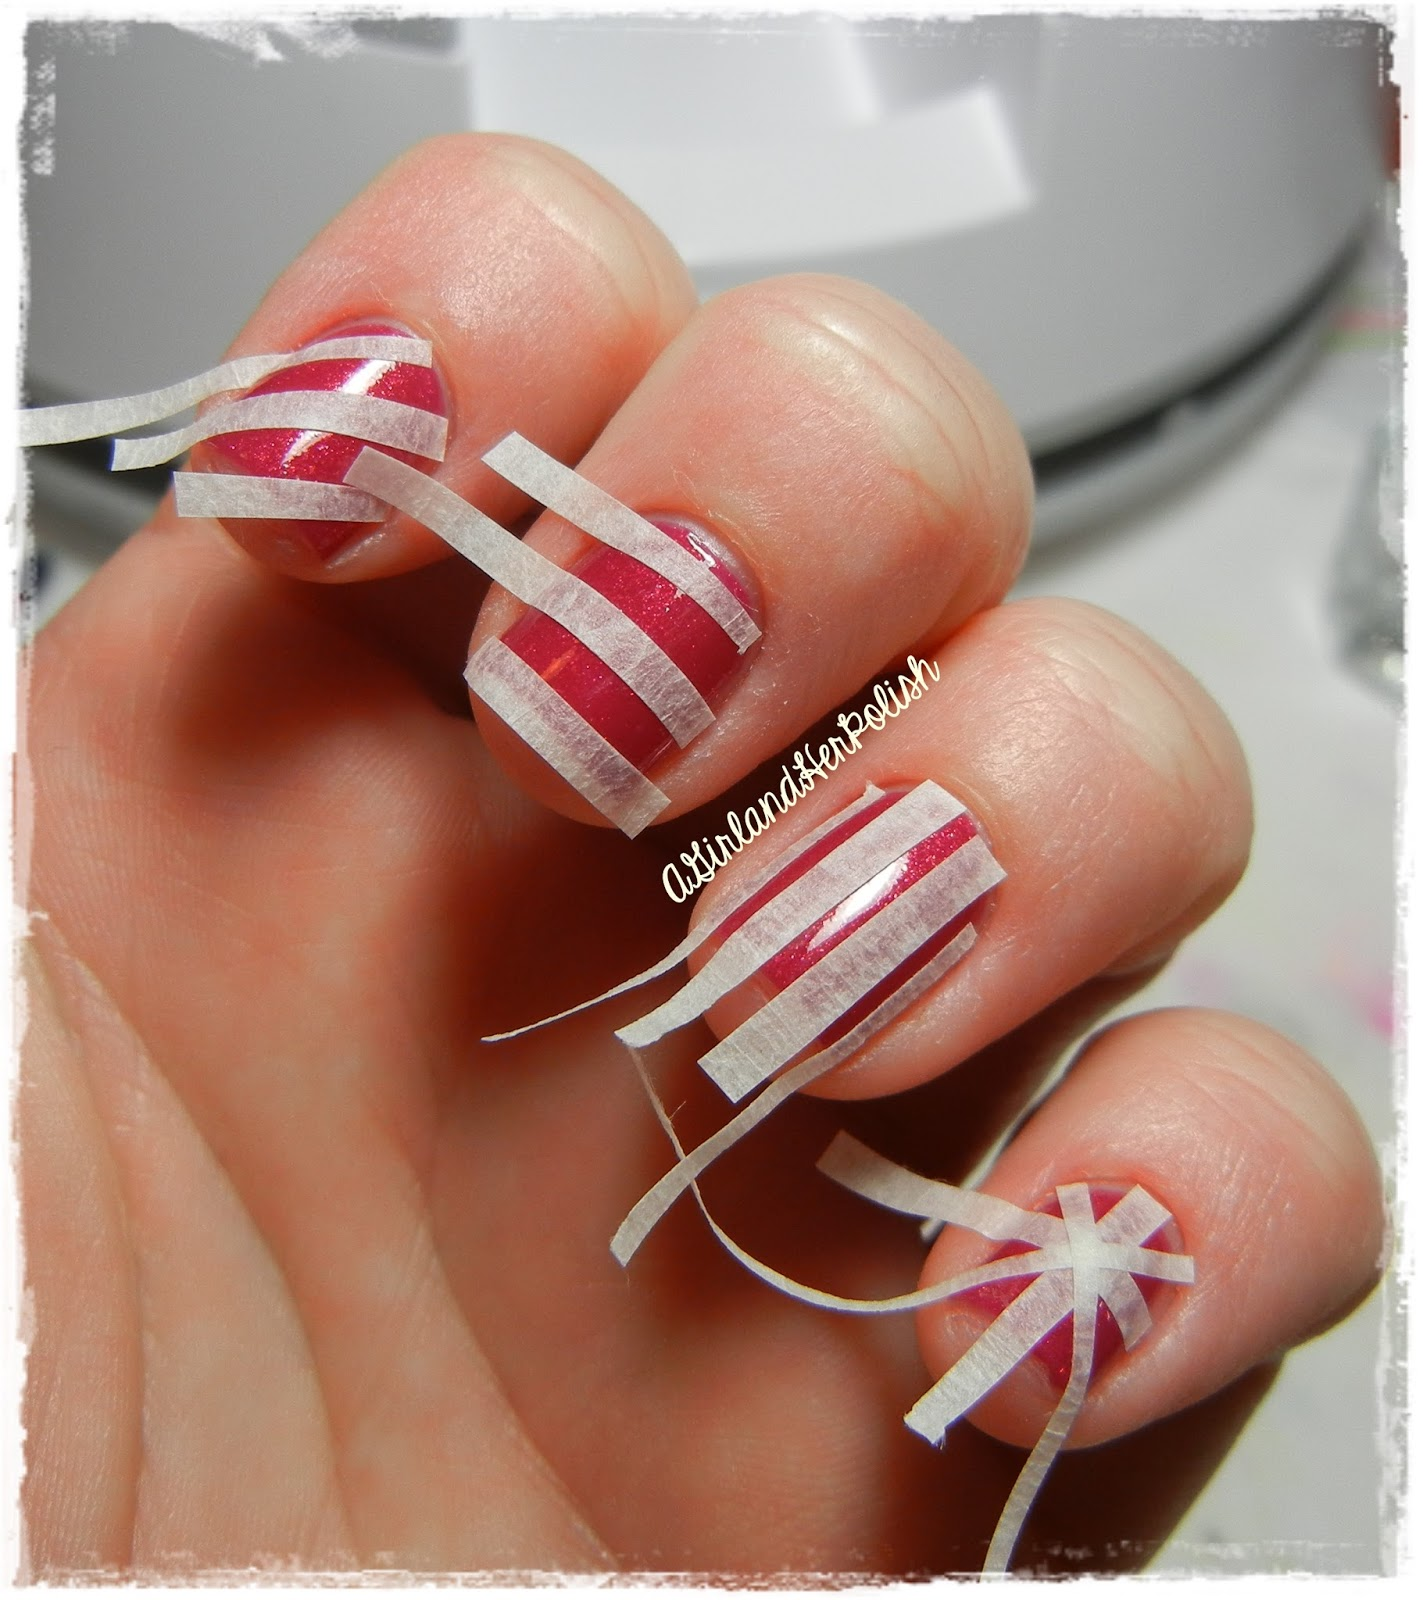 Patterns Using Tape Nail Art: A Girl And Her Polish: Born Pretty Store Nail Art Tape